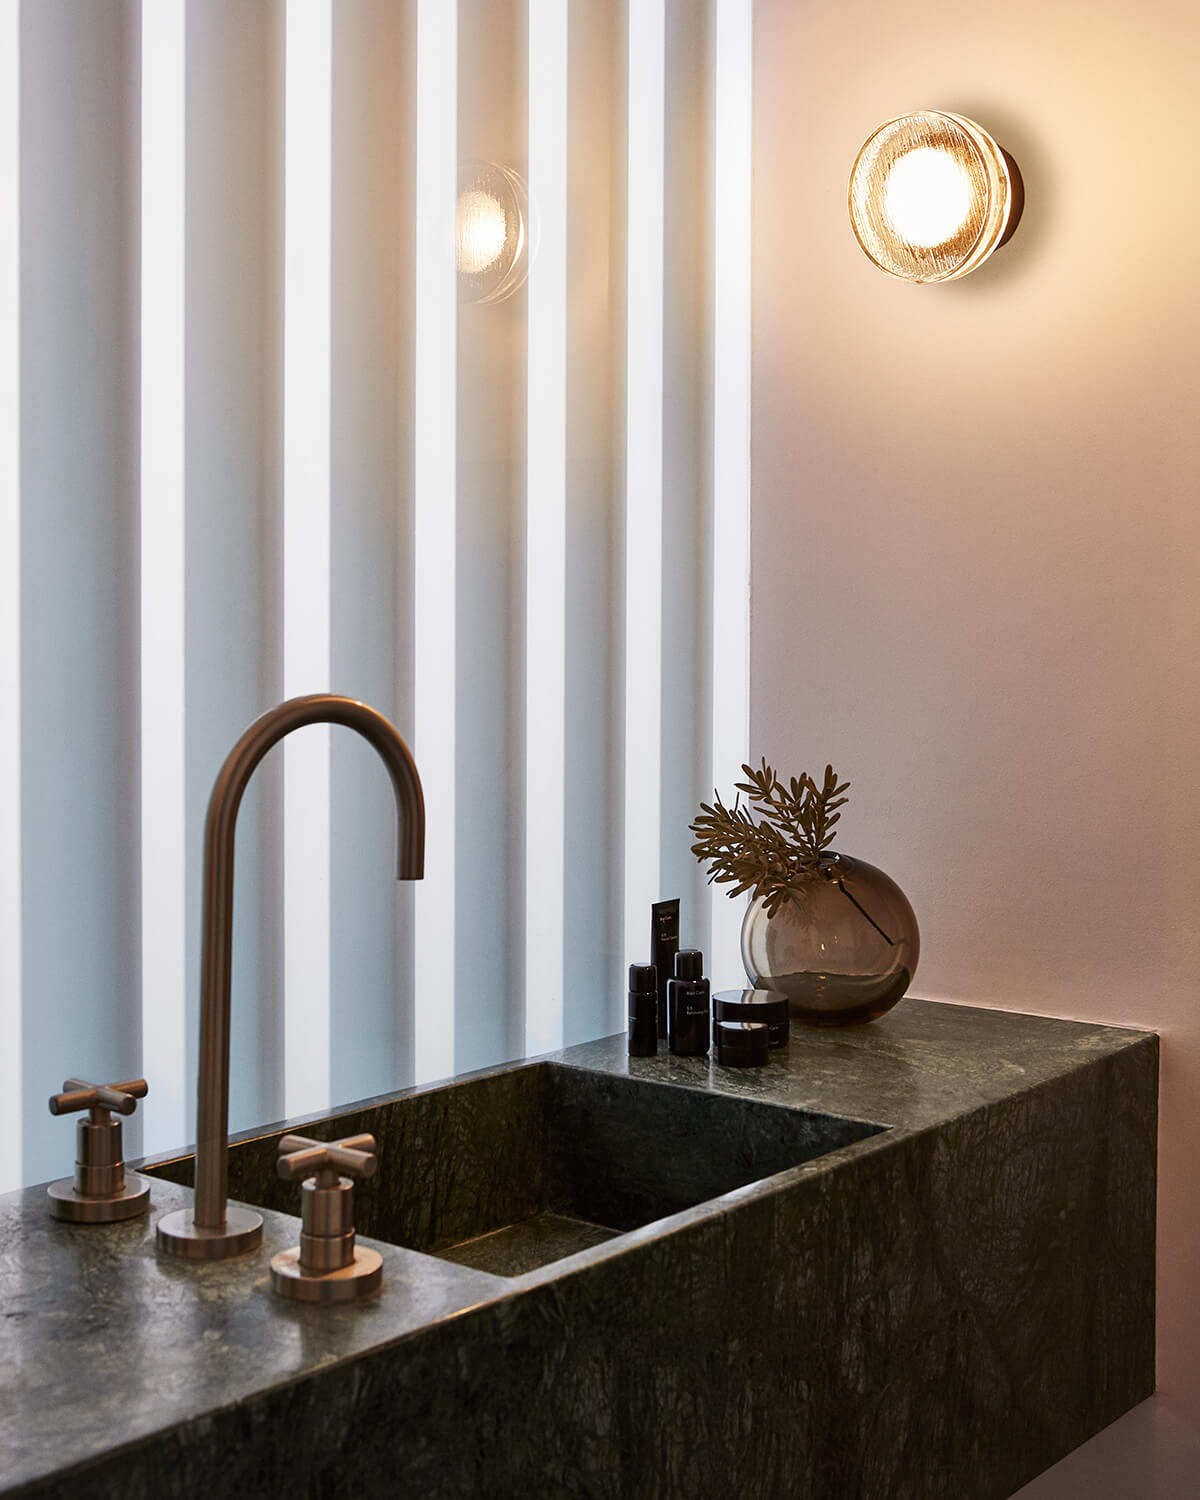 Roc Sconce mounted next to a marble bathroom sink